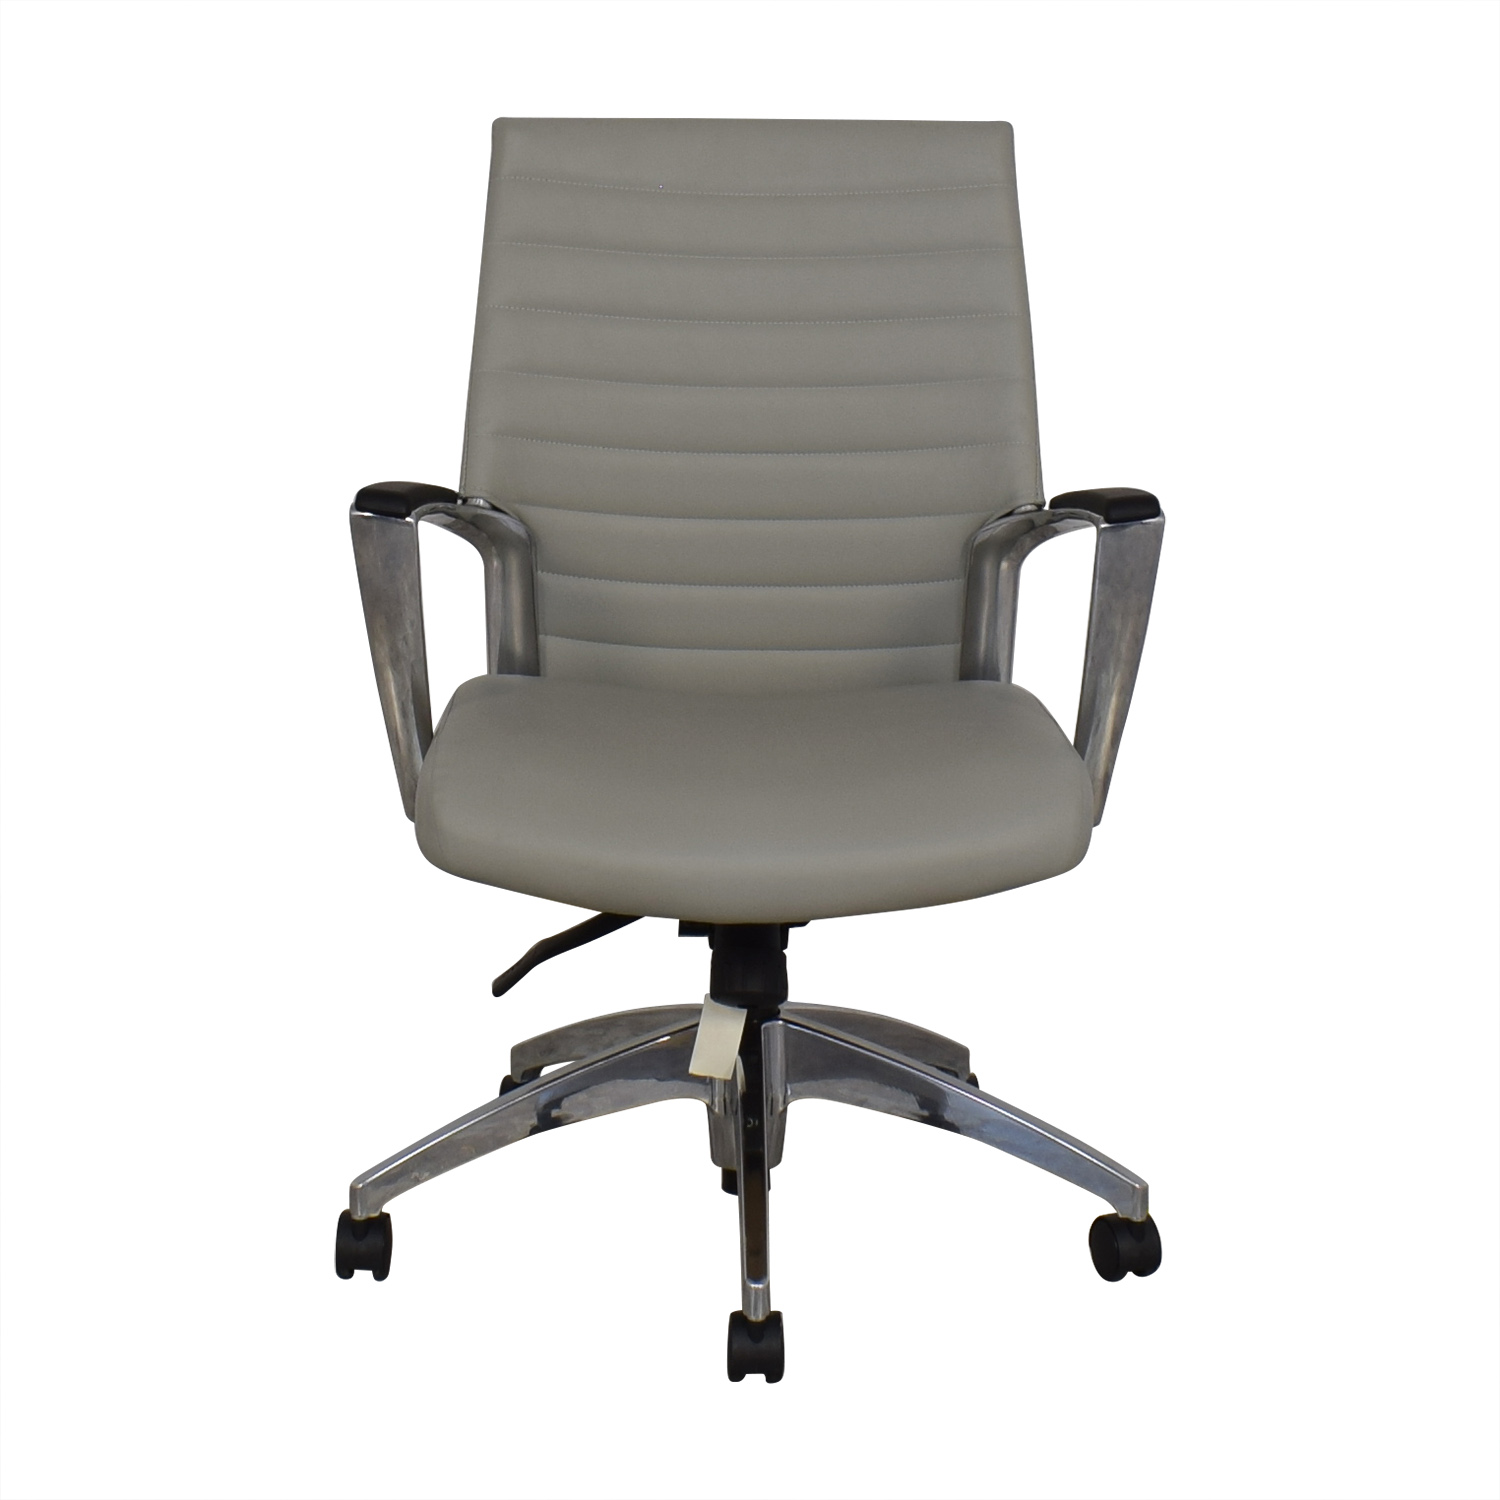 Global Accord Mid Back Tilter Chair / Home Office Chairs